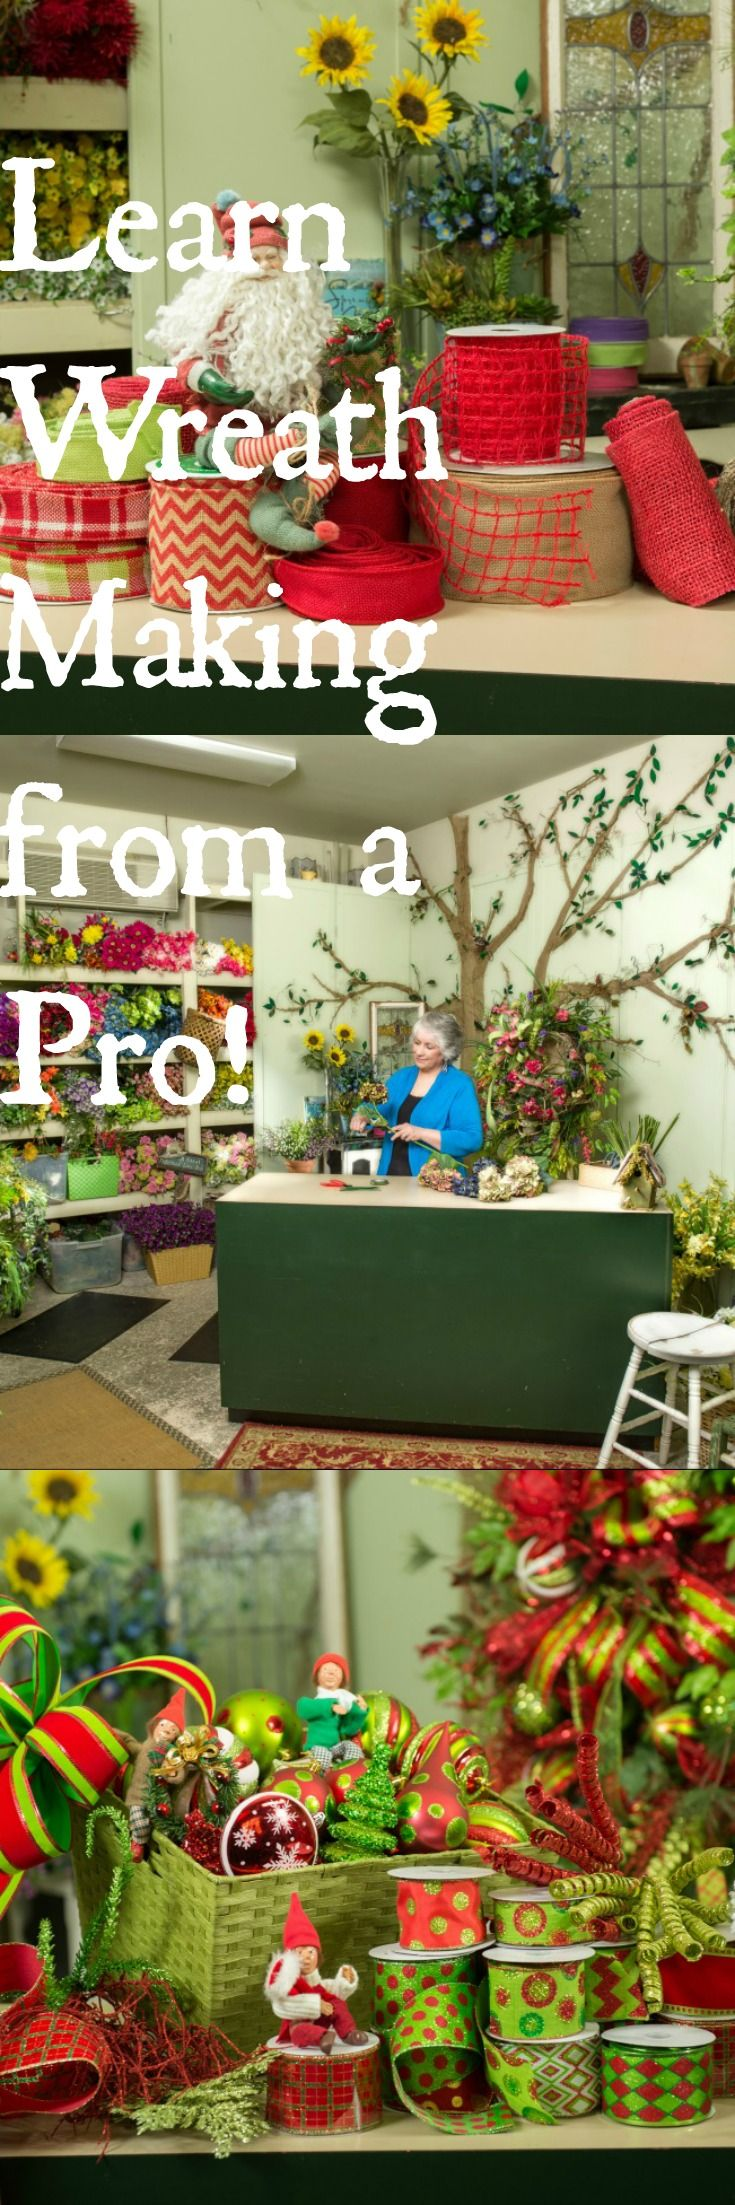 """Learn wreath making from a pro.Professional floral designer, Nancy Alexander will teach you to makes wreaths in her new book """"How To Make Your Own Wreath"""". http://ladybugwreaths.com"""